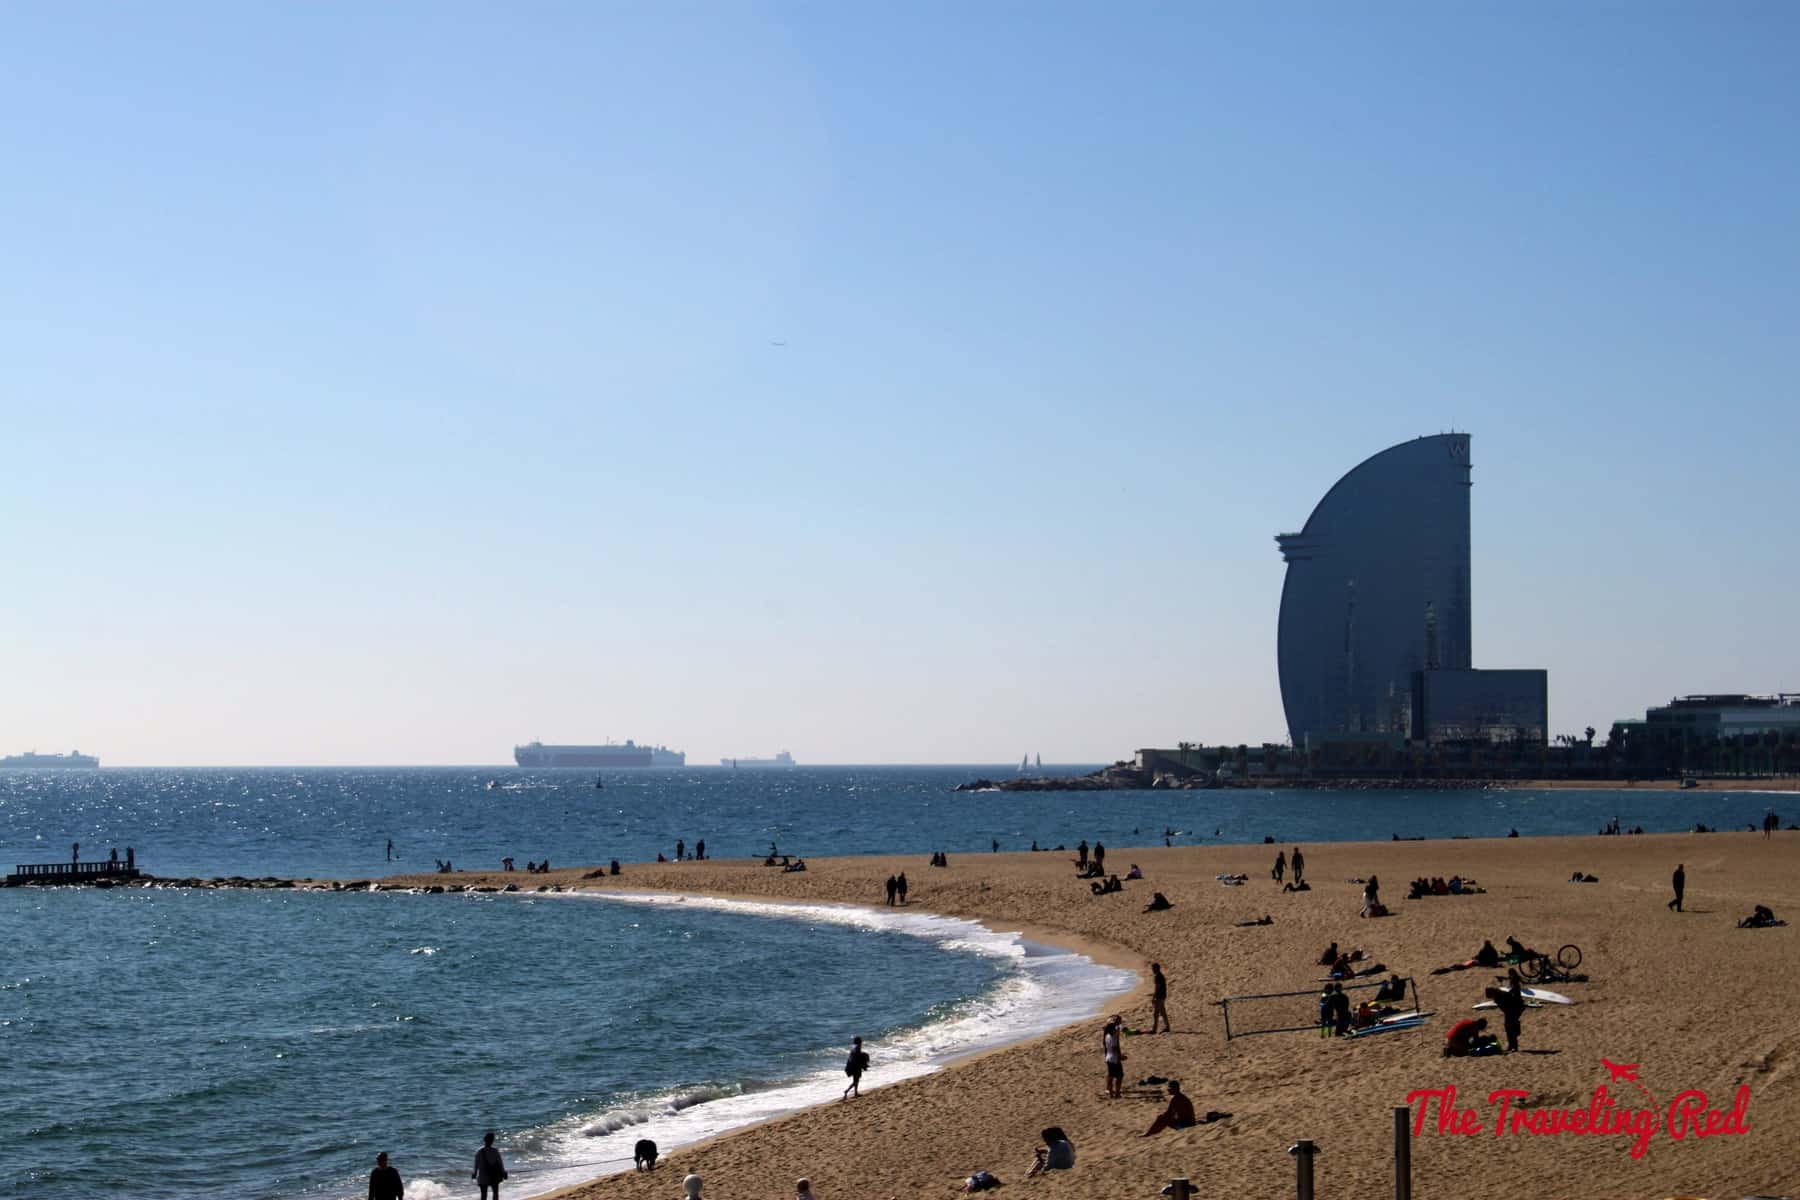 Exploring Barceloneta. Barceloneta is the beach part of Barcelona, Spain.  It has a long boardwalk and plenty of restaurants. The W Hotel sits  at the edge.